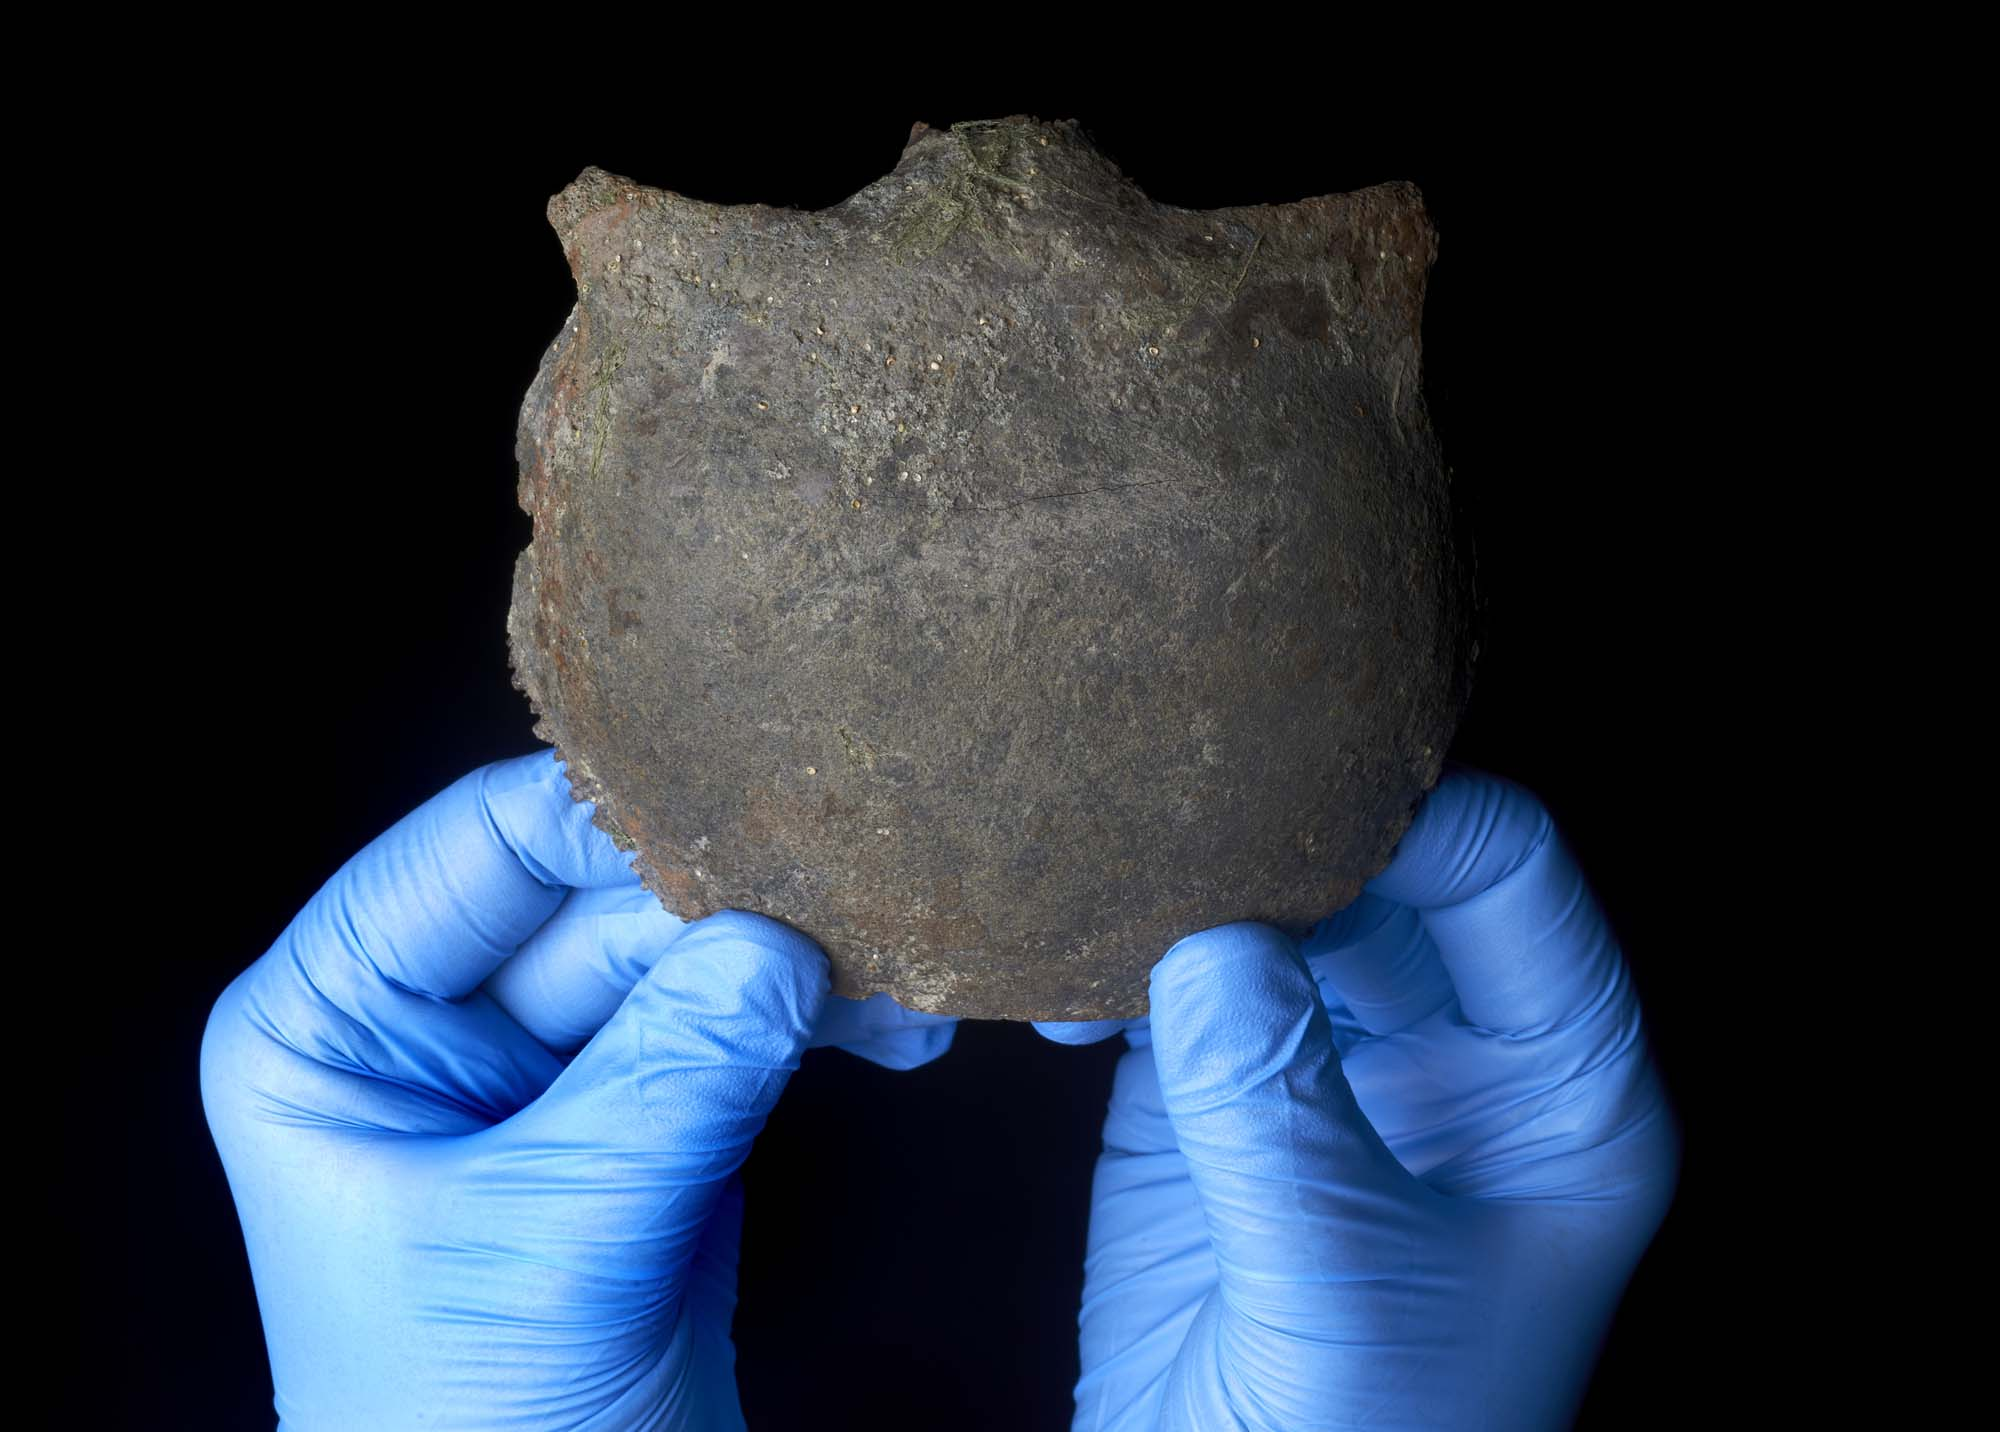 a photo of a skull fragment being held by a pair of blue rubber gloved hands